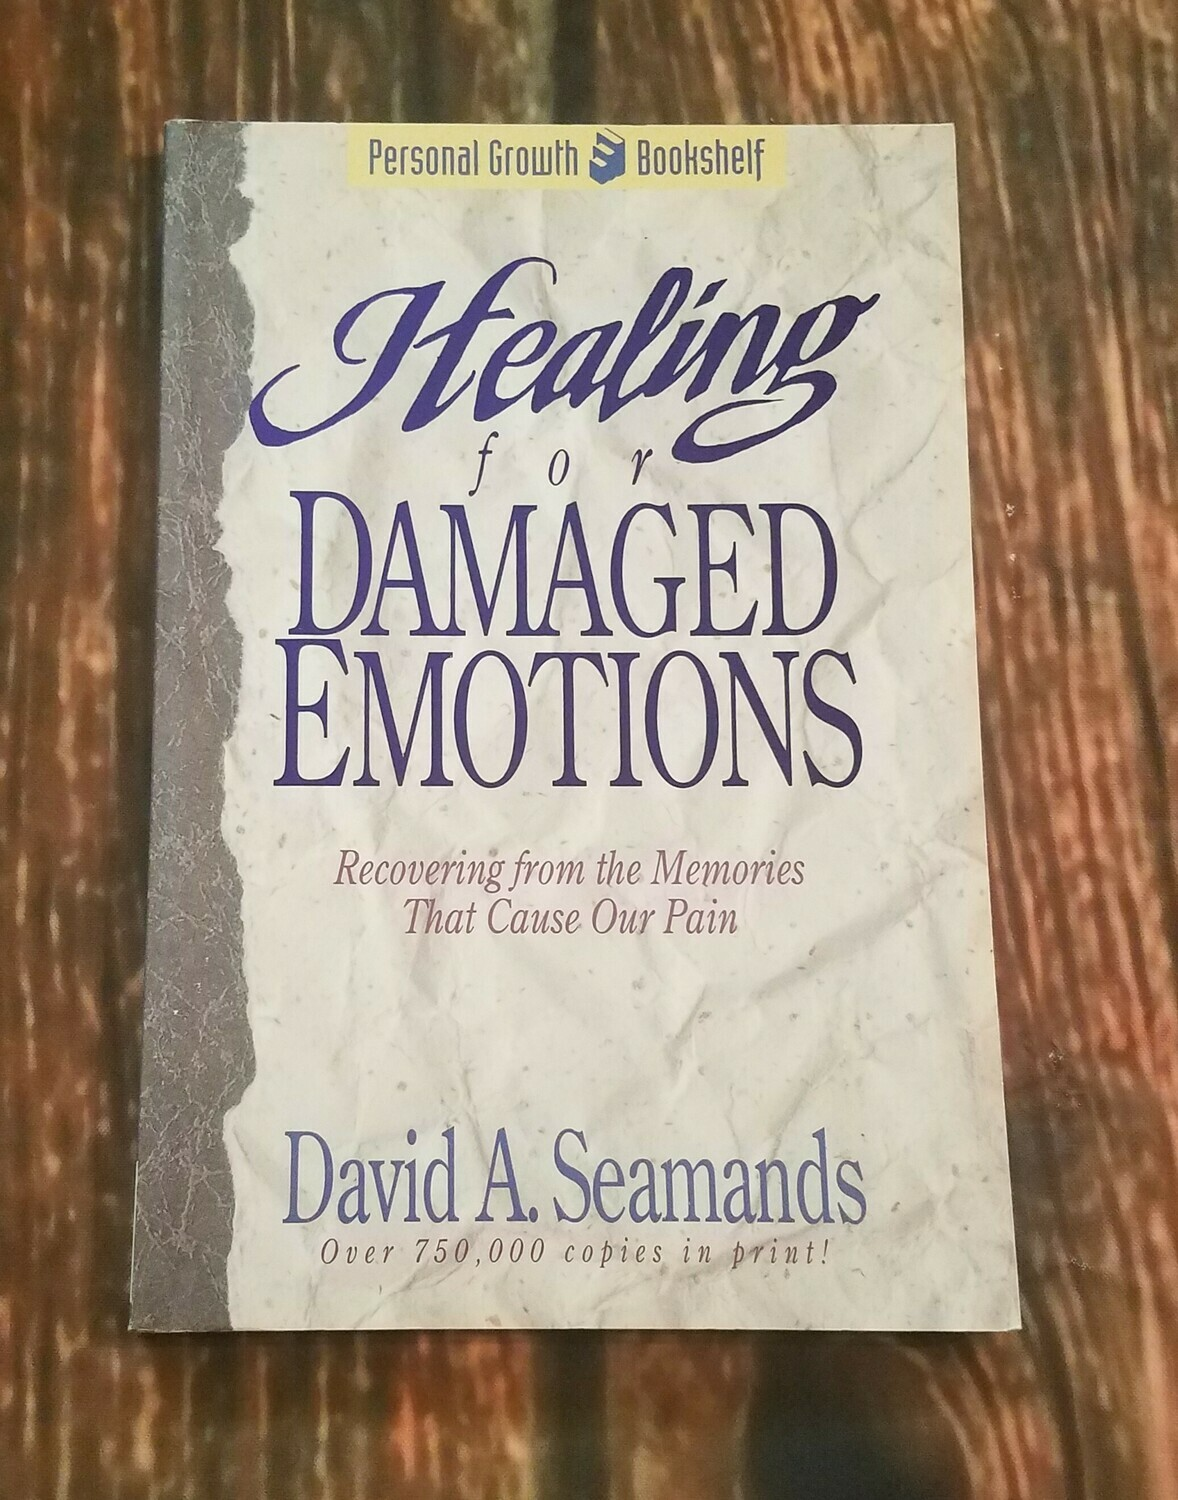 Healing for Damaged Emotions by David A. Seamands